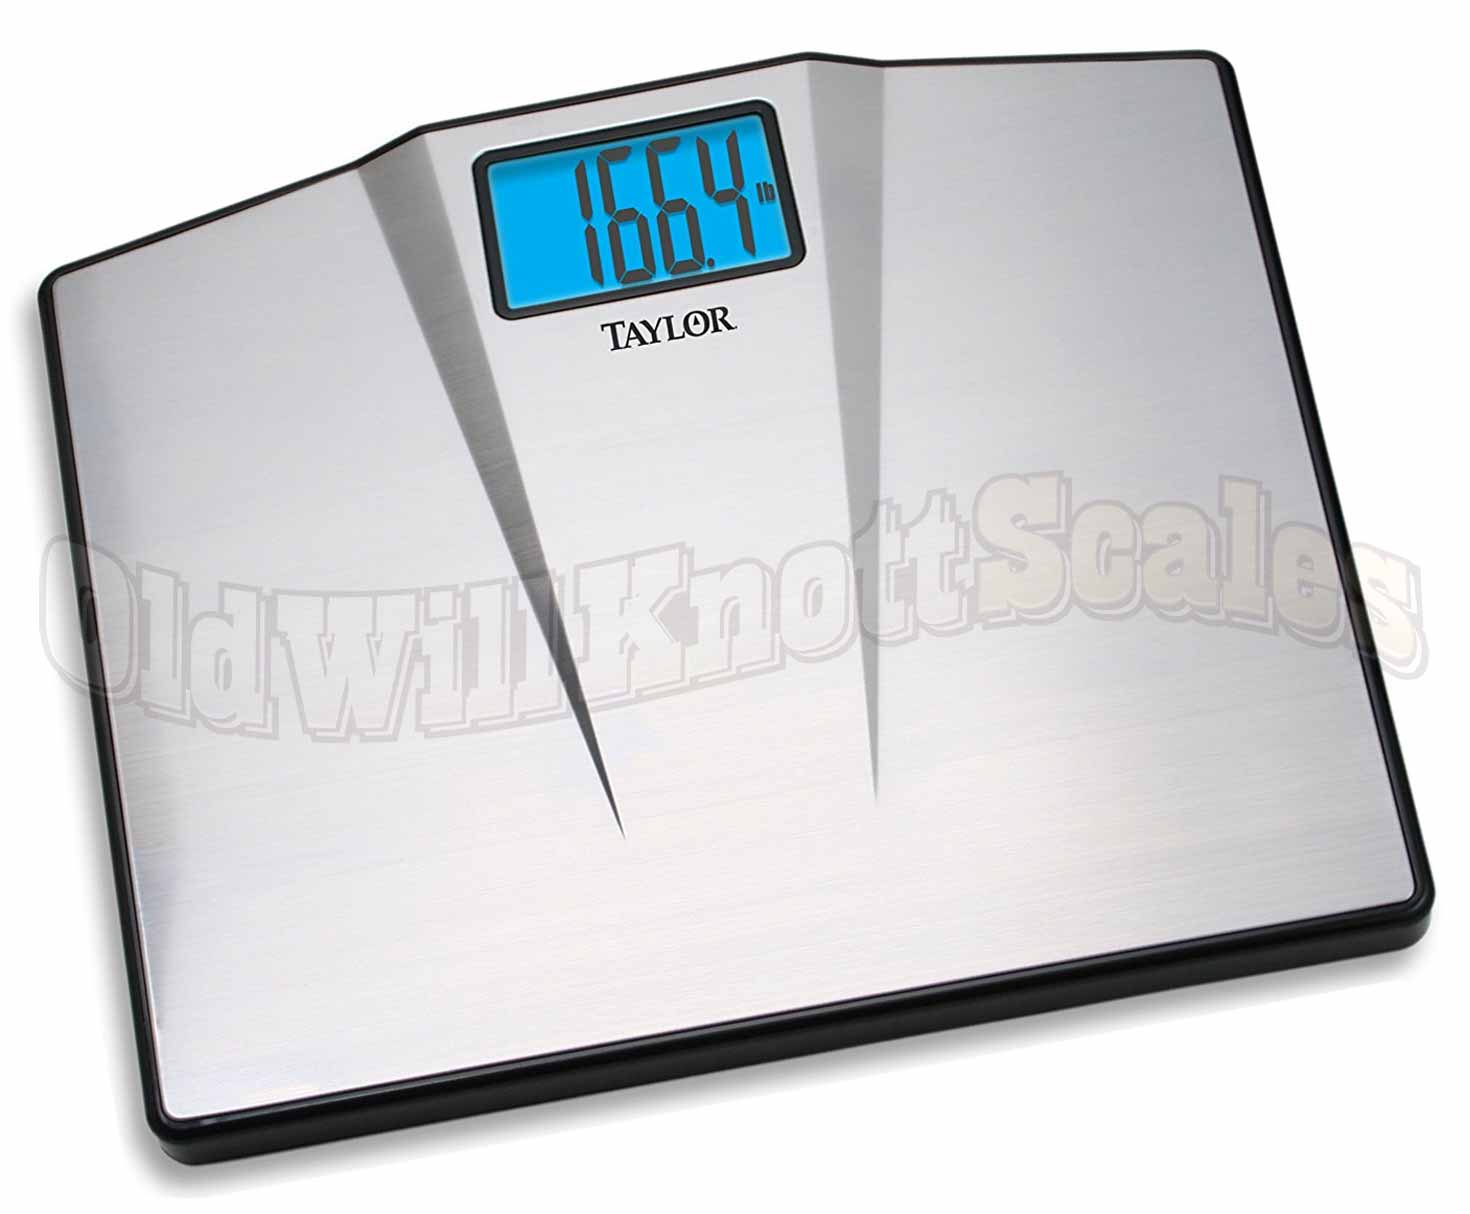 Taylor 7410 taylor 7410,stainless steel bathroom scale,taylor